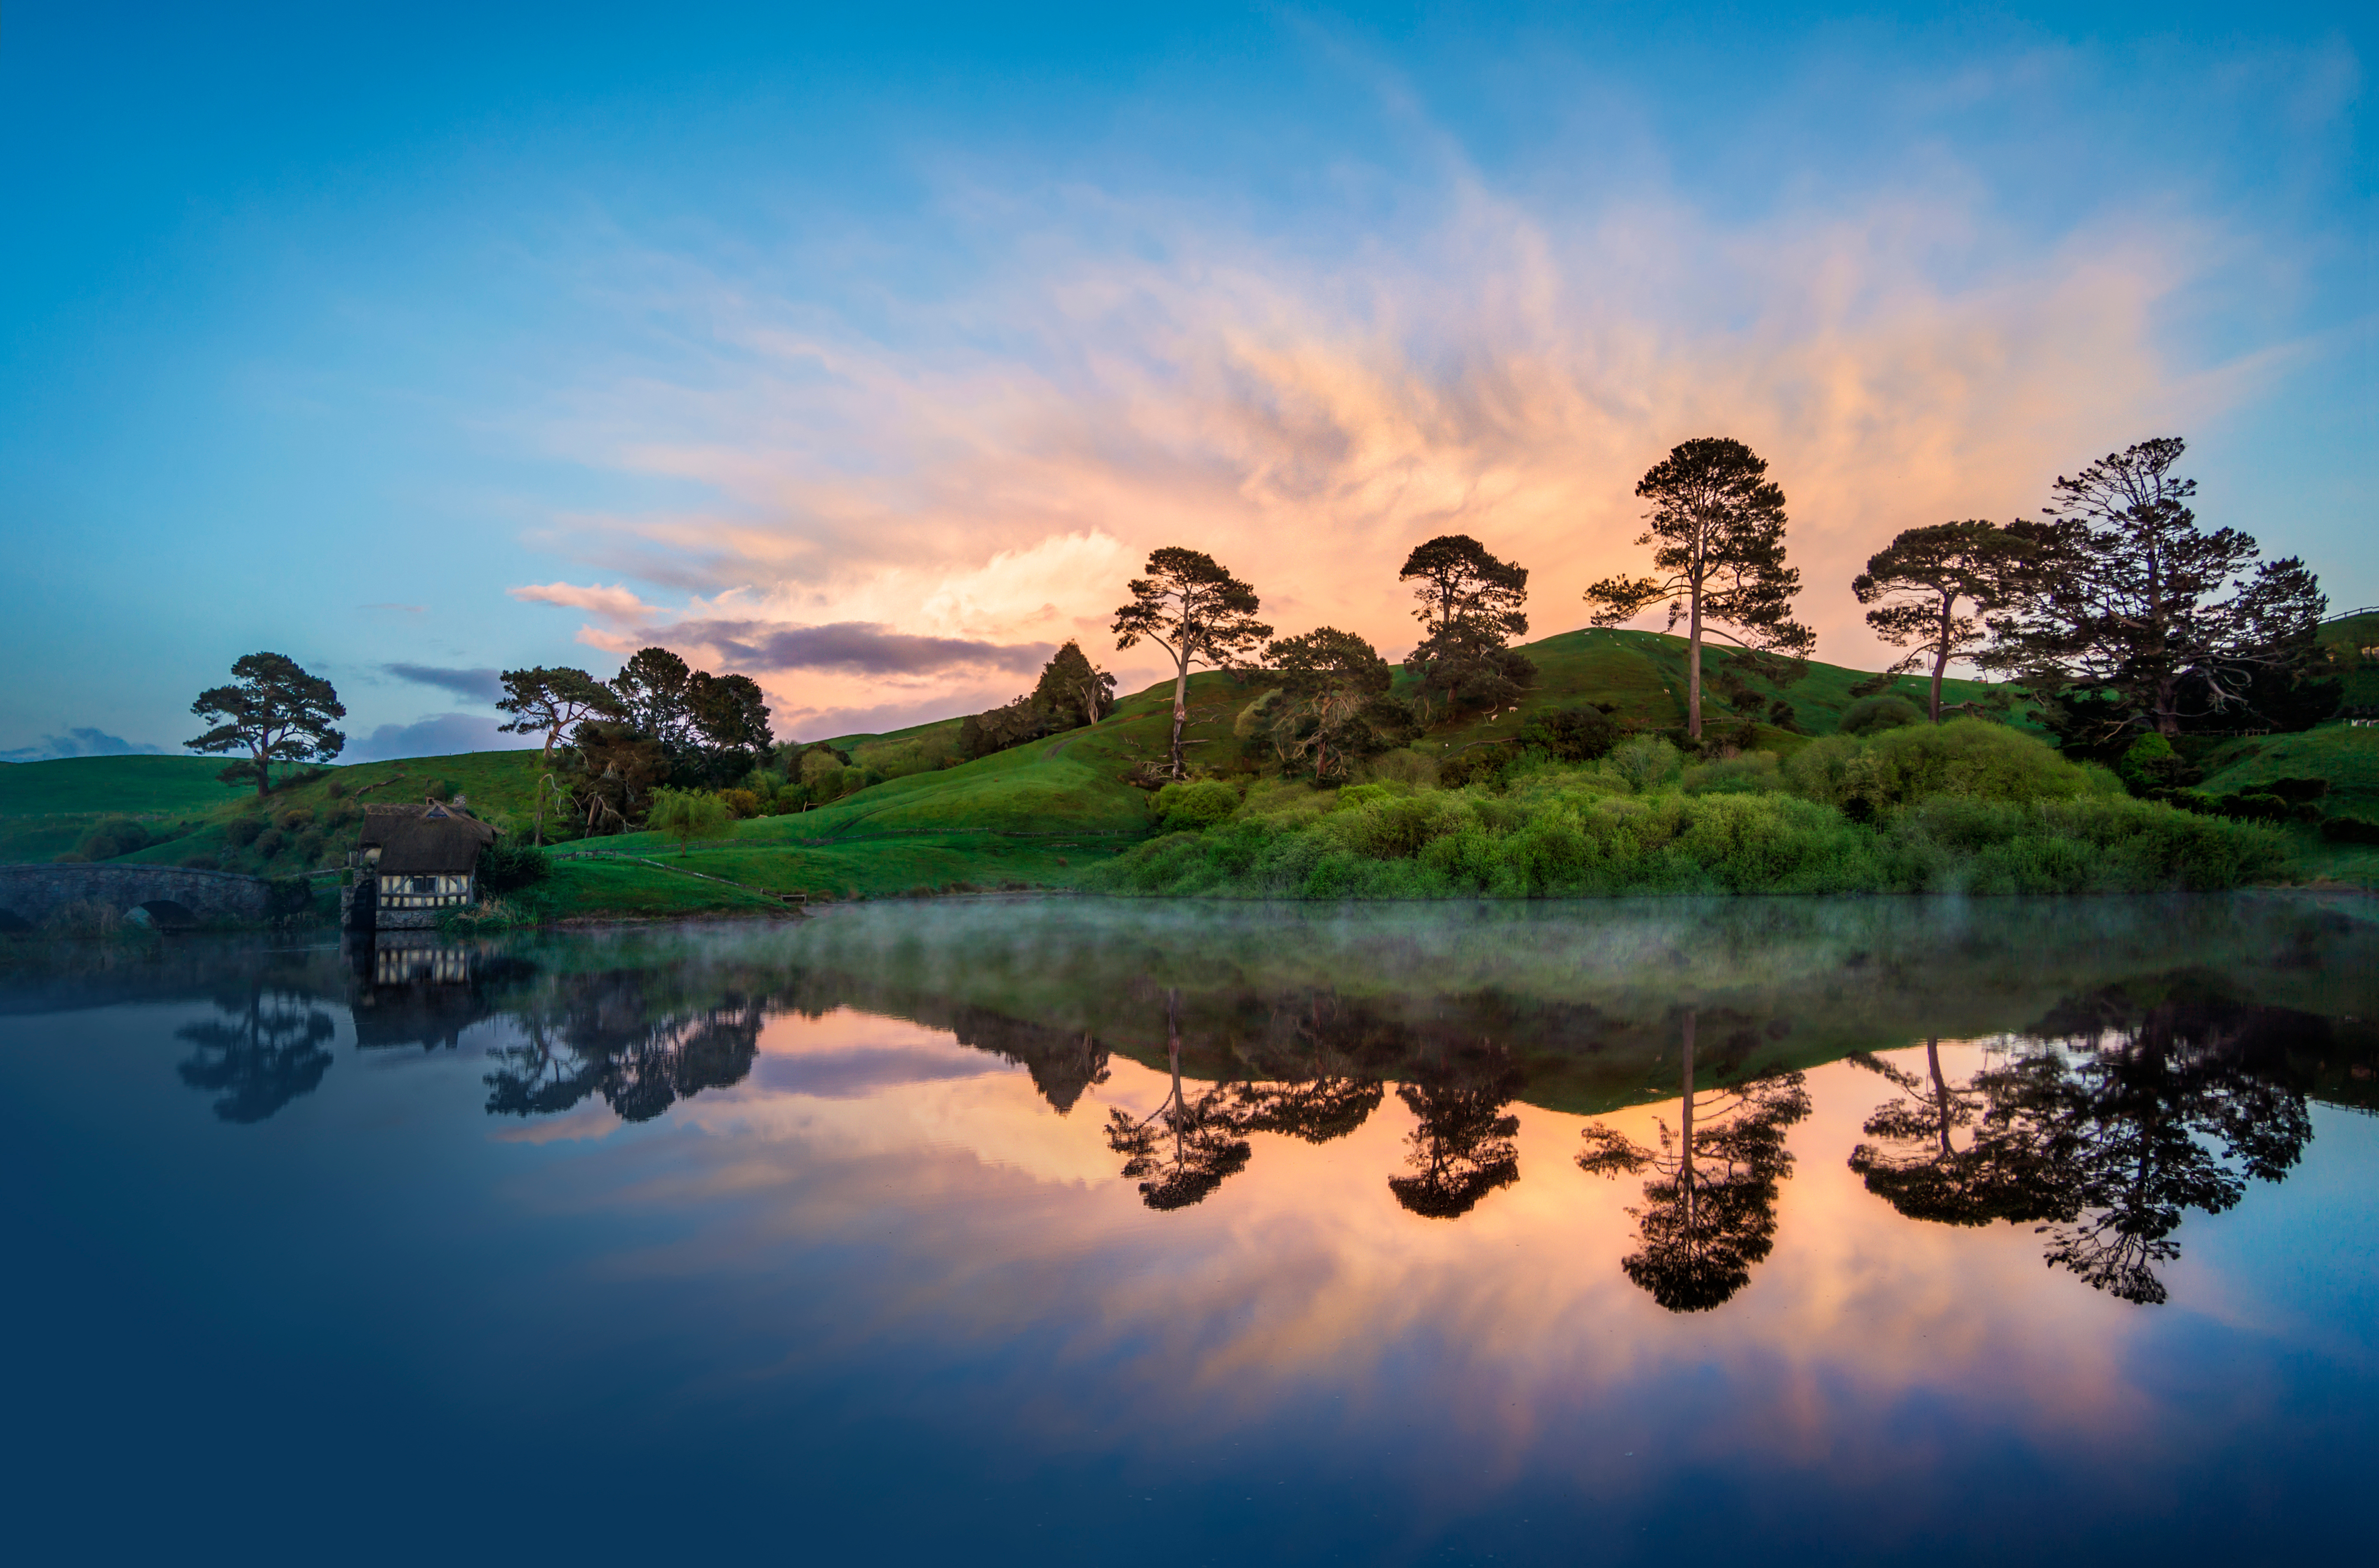 156115 download wallpaper Nature, Lake, Trees, Sunset, Hill screensavers and pictures for free